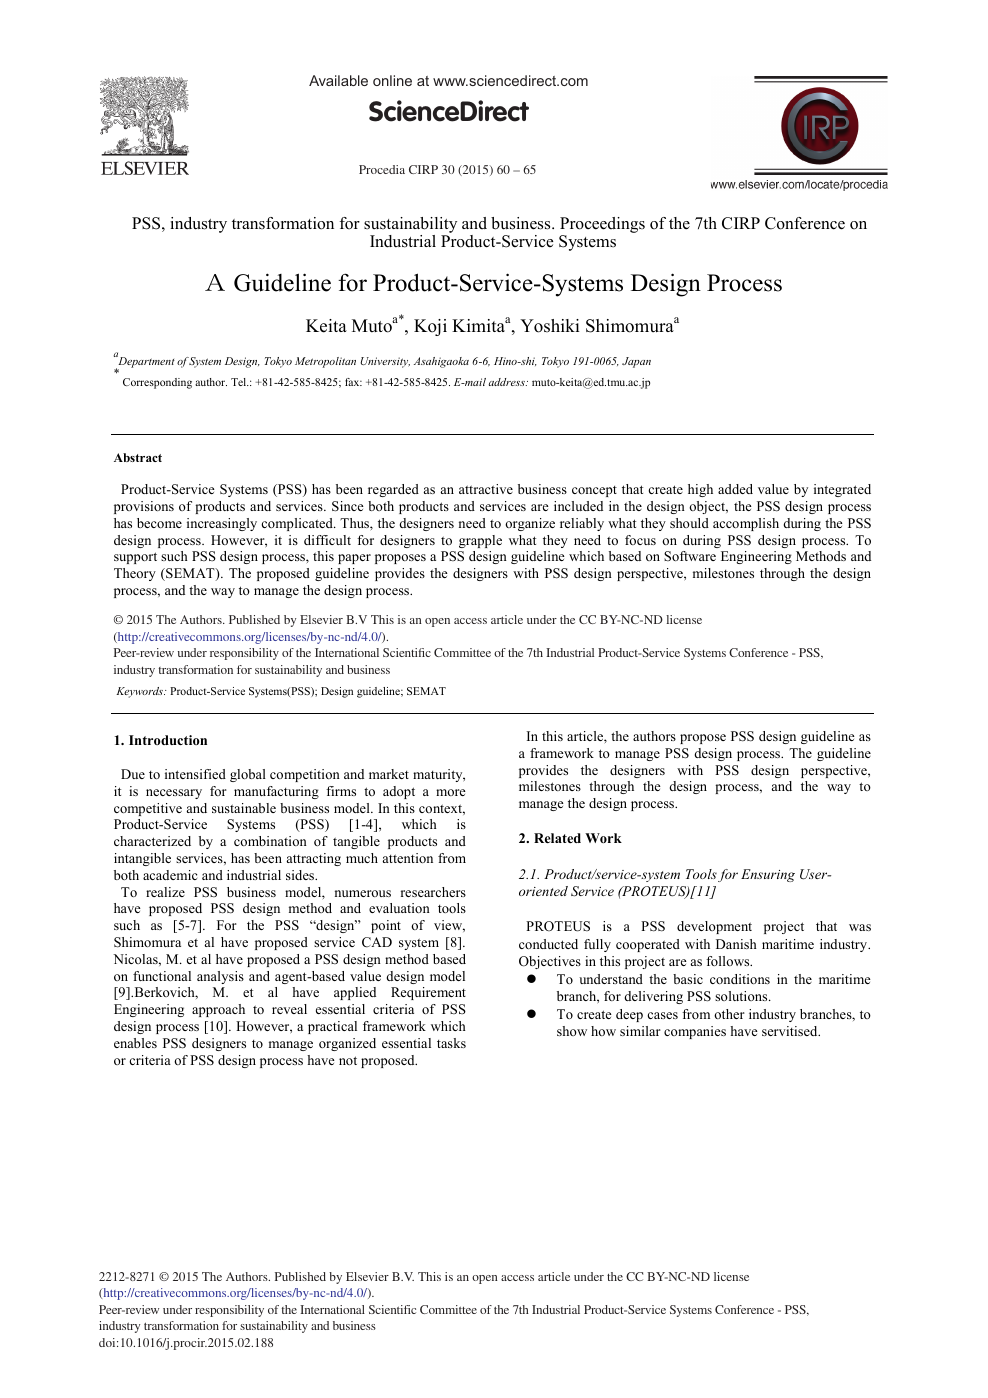 A Guideline For Product Service Systems Design Process Topic Of Research Paper In Civil Engineering Download Scholarly Article Pdf And Read For Free On Cyberleninka Open Science Hub